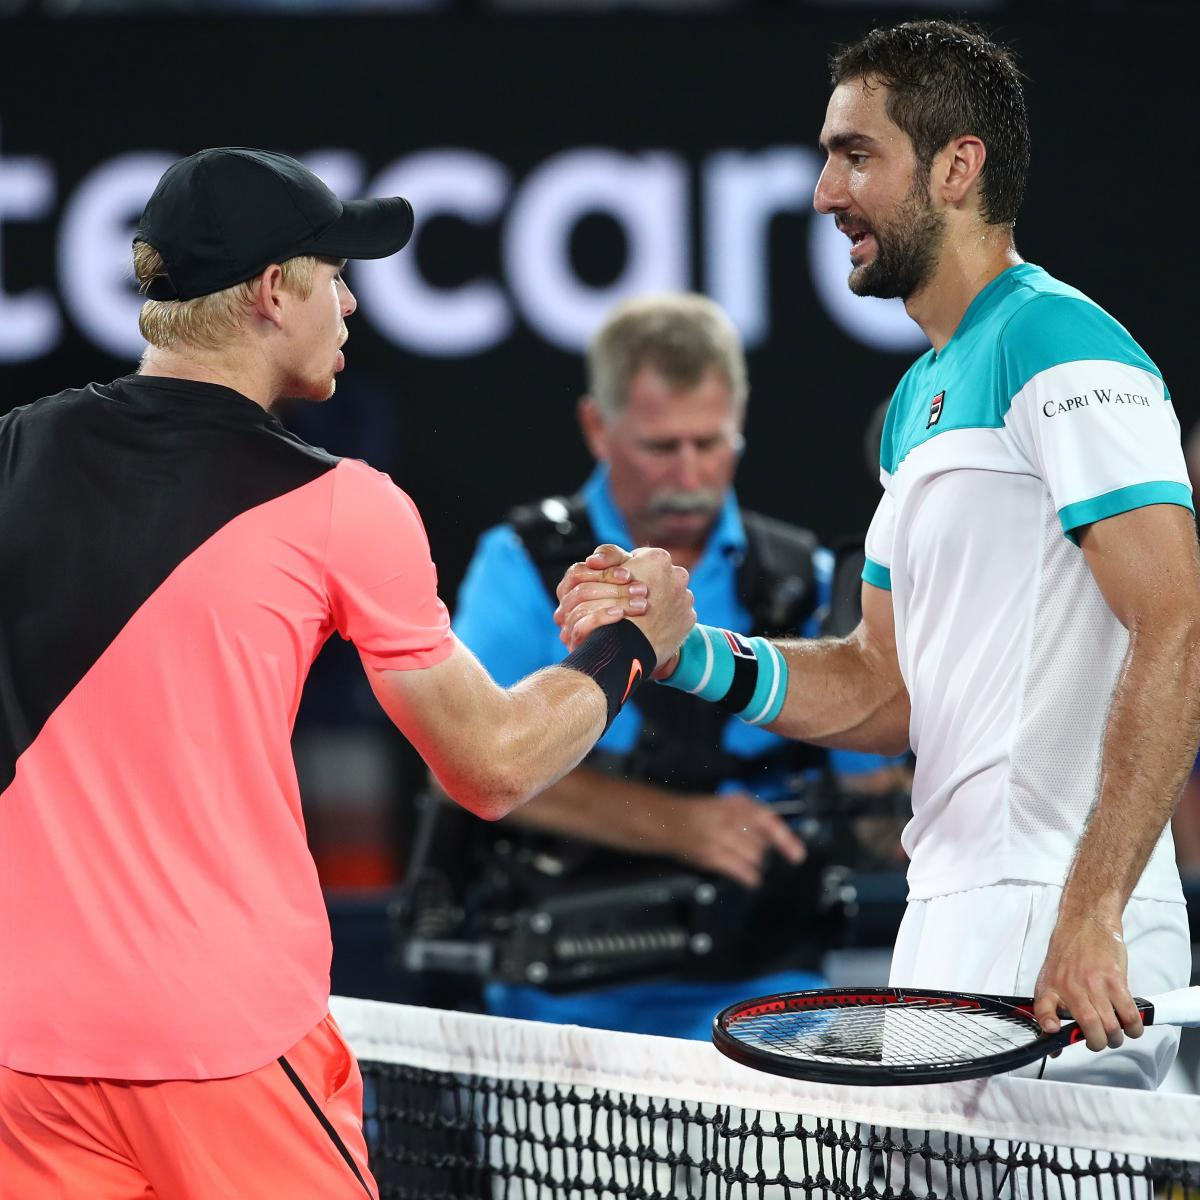 Australian Open 2018 Schedule: Thursday Replay TV Coverage